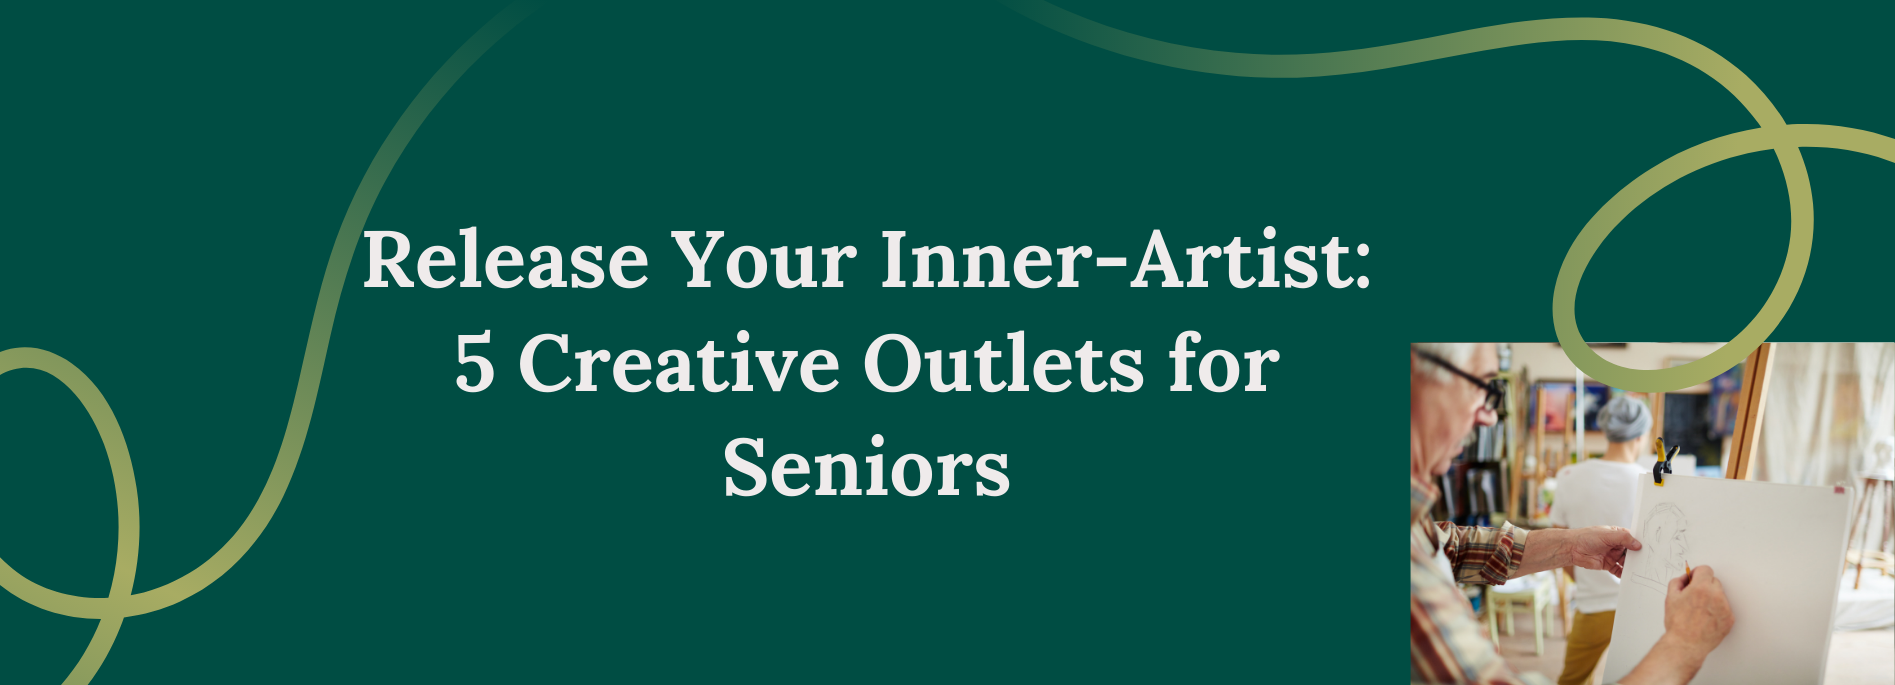 Release Your Inner-Artist: 5 Creative Outlets for Seniors